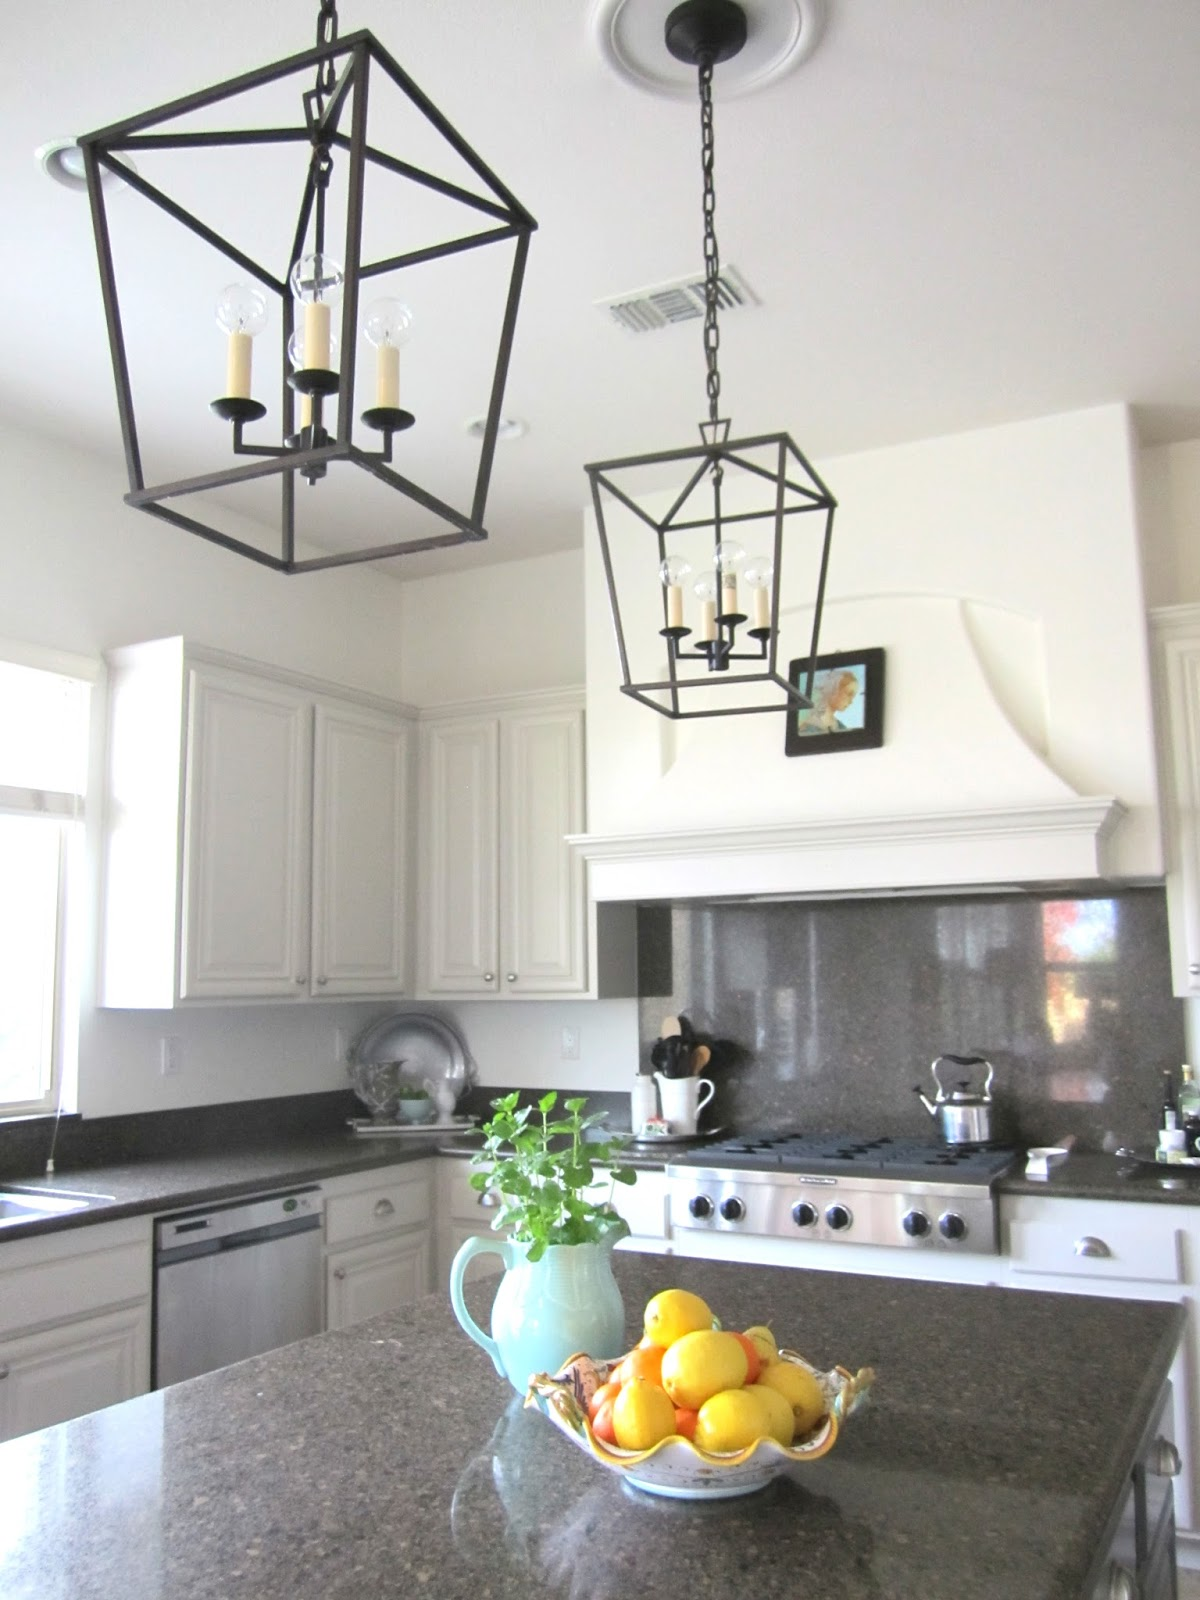 a phased decorating approach kitchen lantern lights Notice the round light bulbs for a fun look There s no glass in these lanterns which is good since glass is hard to keep clean in kitchens